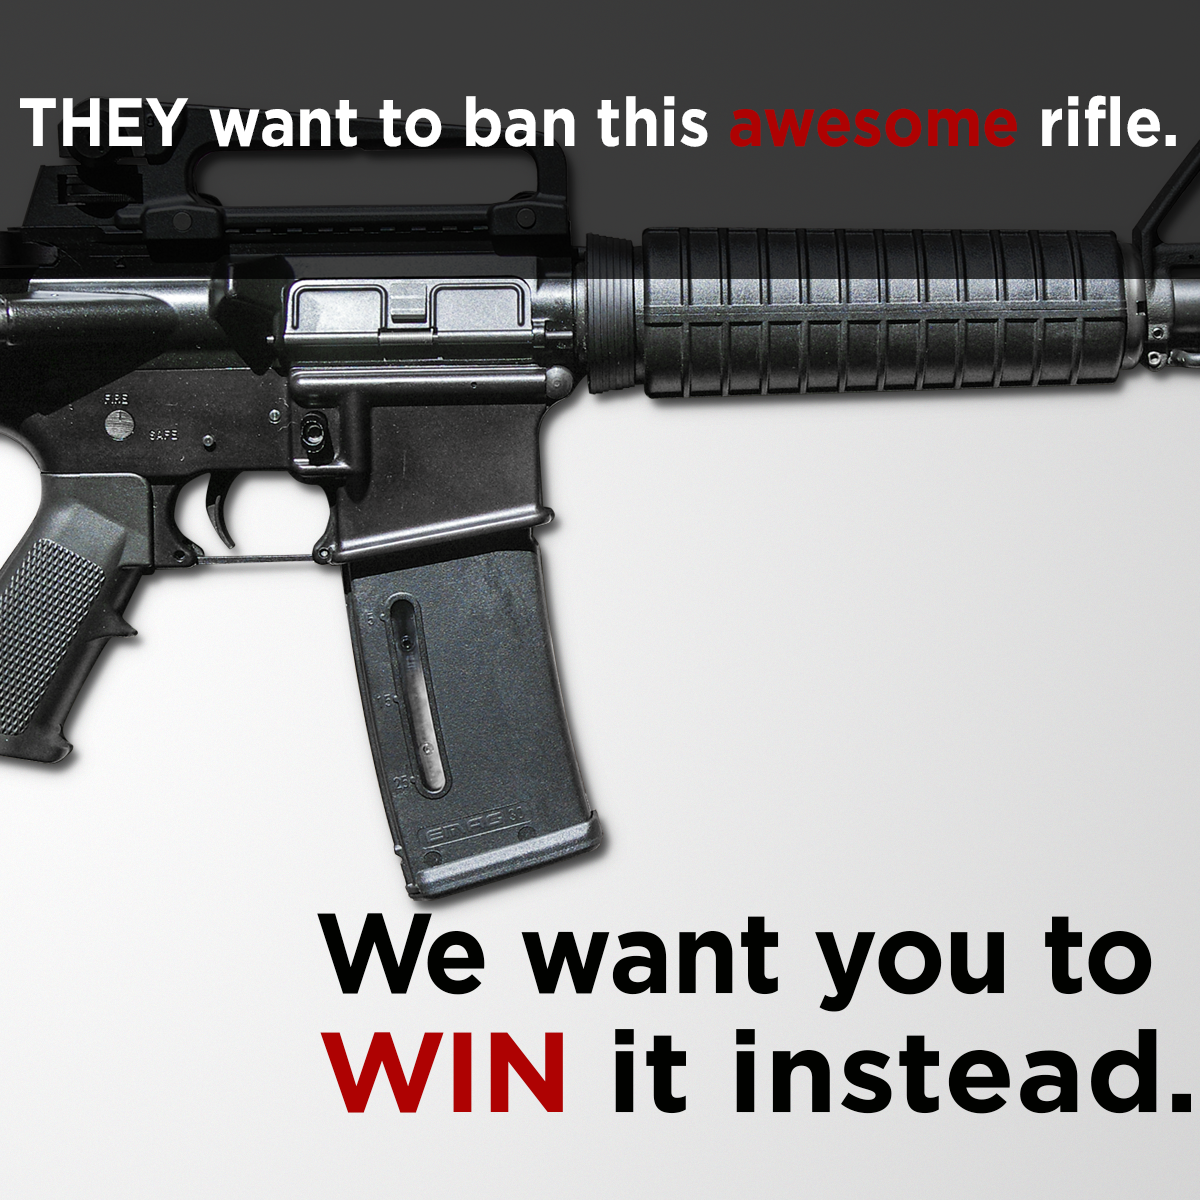 We're Giving Away an AR-15 Rifle - Enter to Win TODAY!